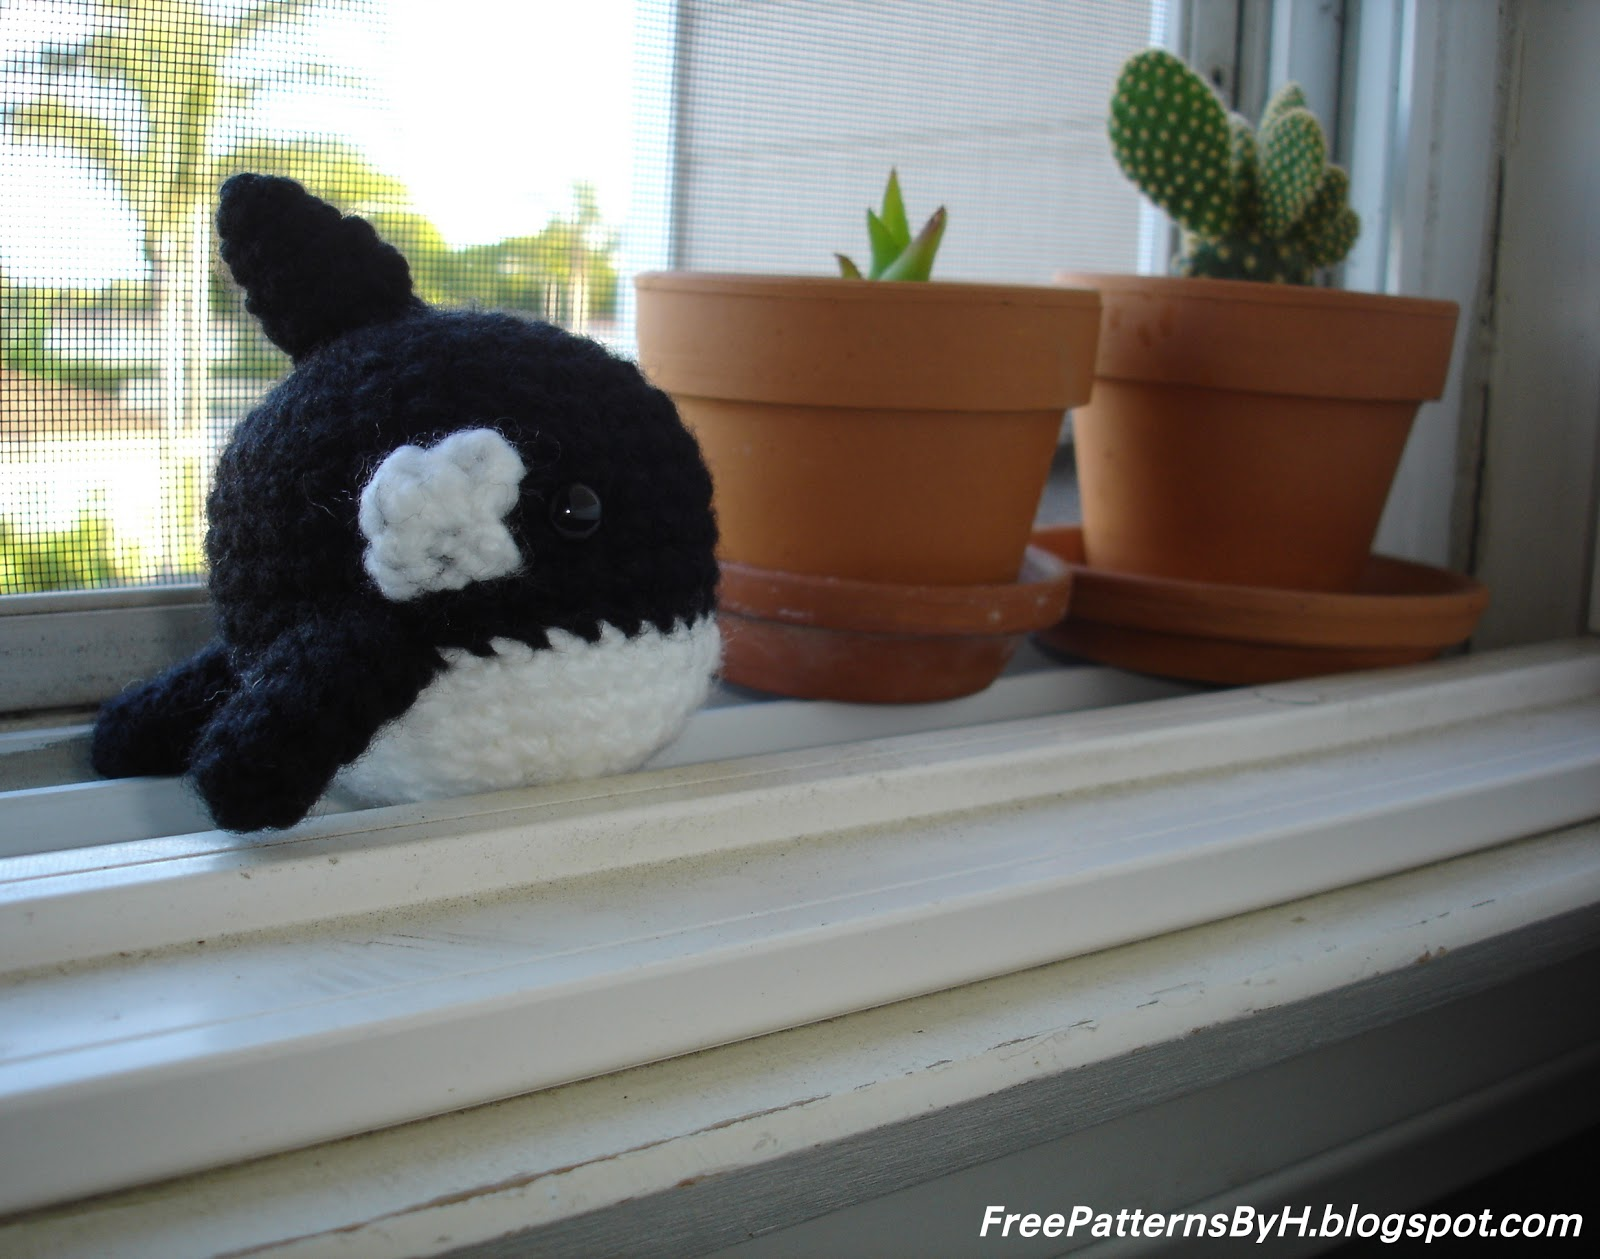 Free Patterns by H: Orca Amigurumi Pattern